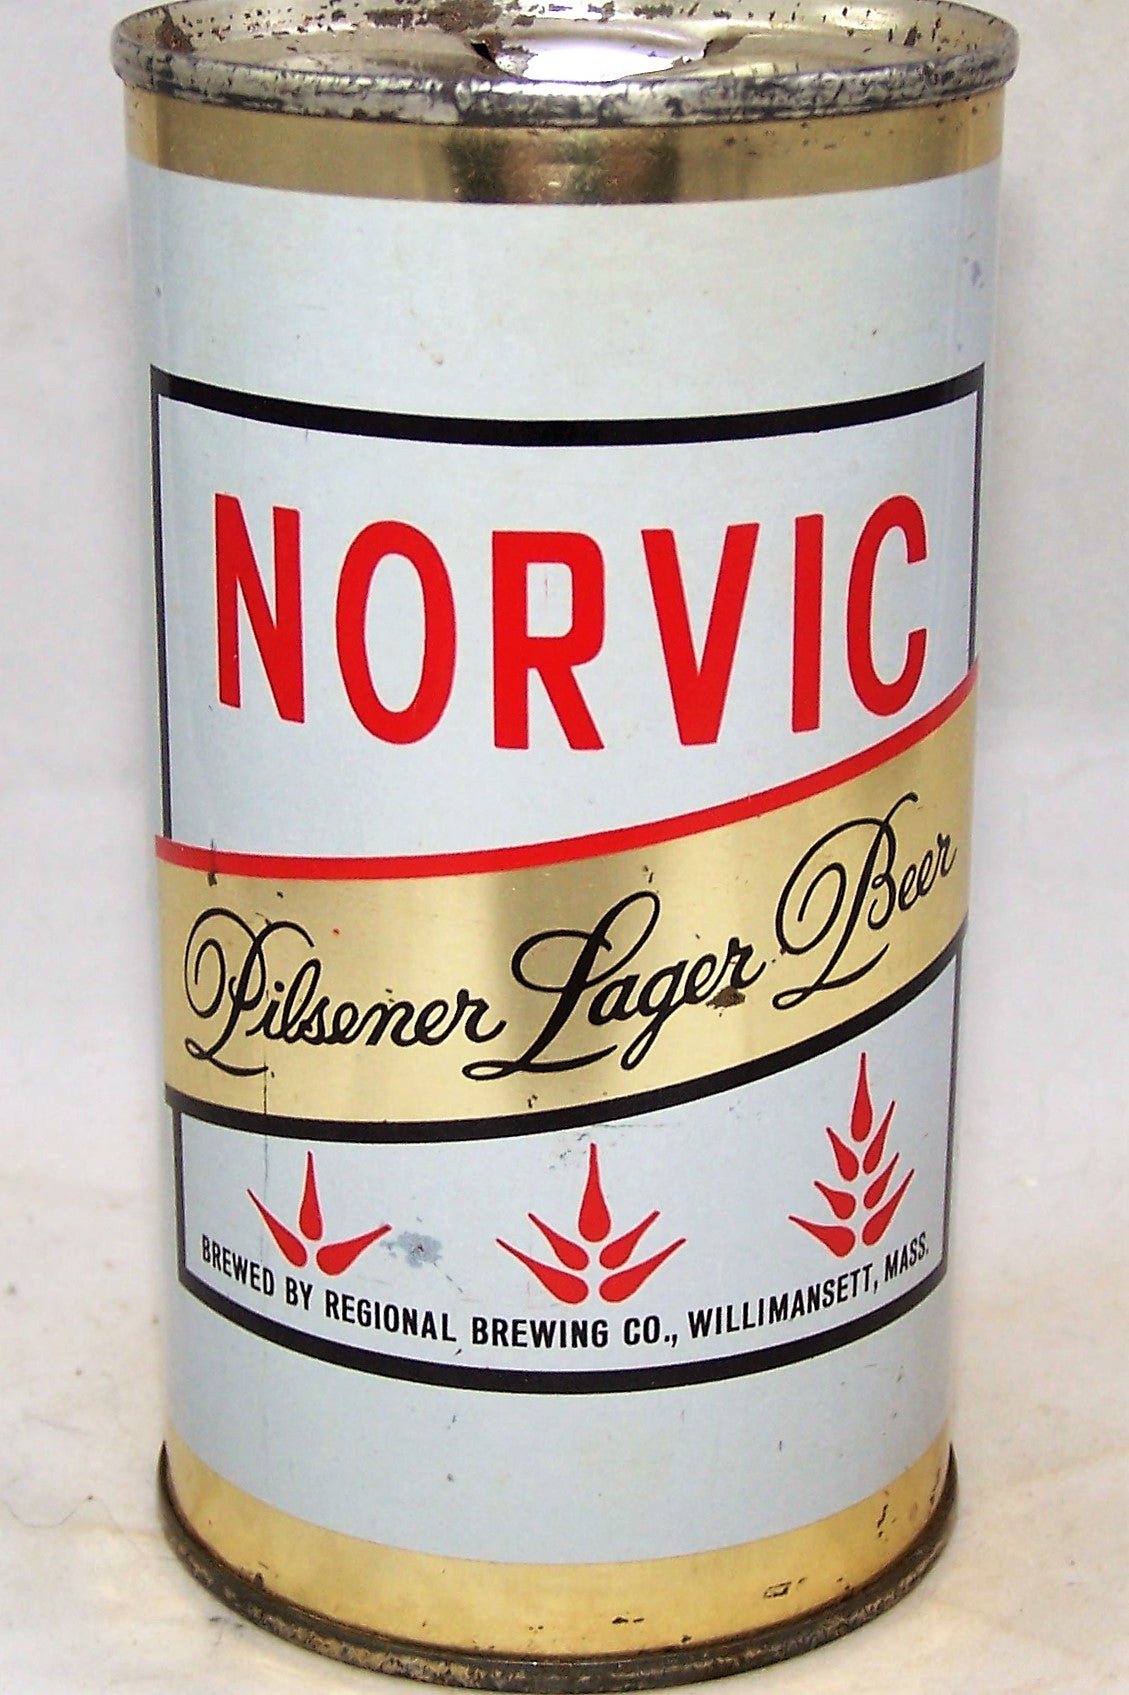 Norvic Pilsener Lager Beer, USBC 103-37, Grade 1/1+  Sold on 11/08/19